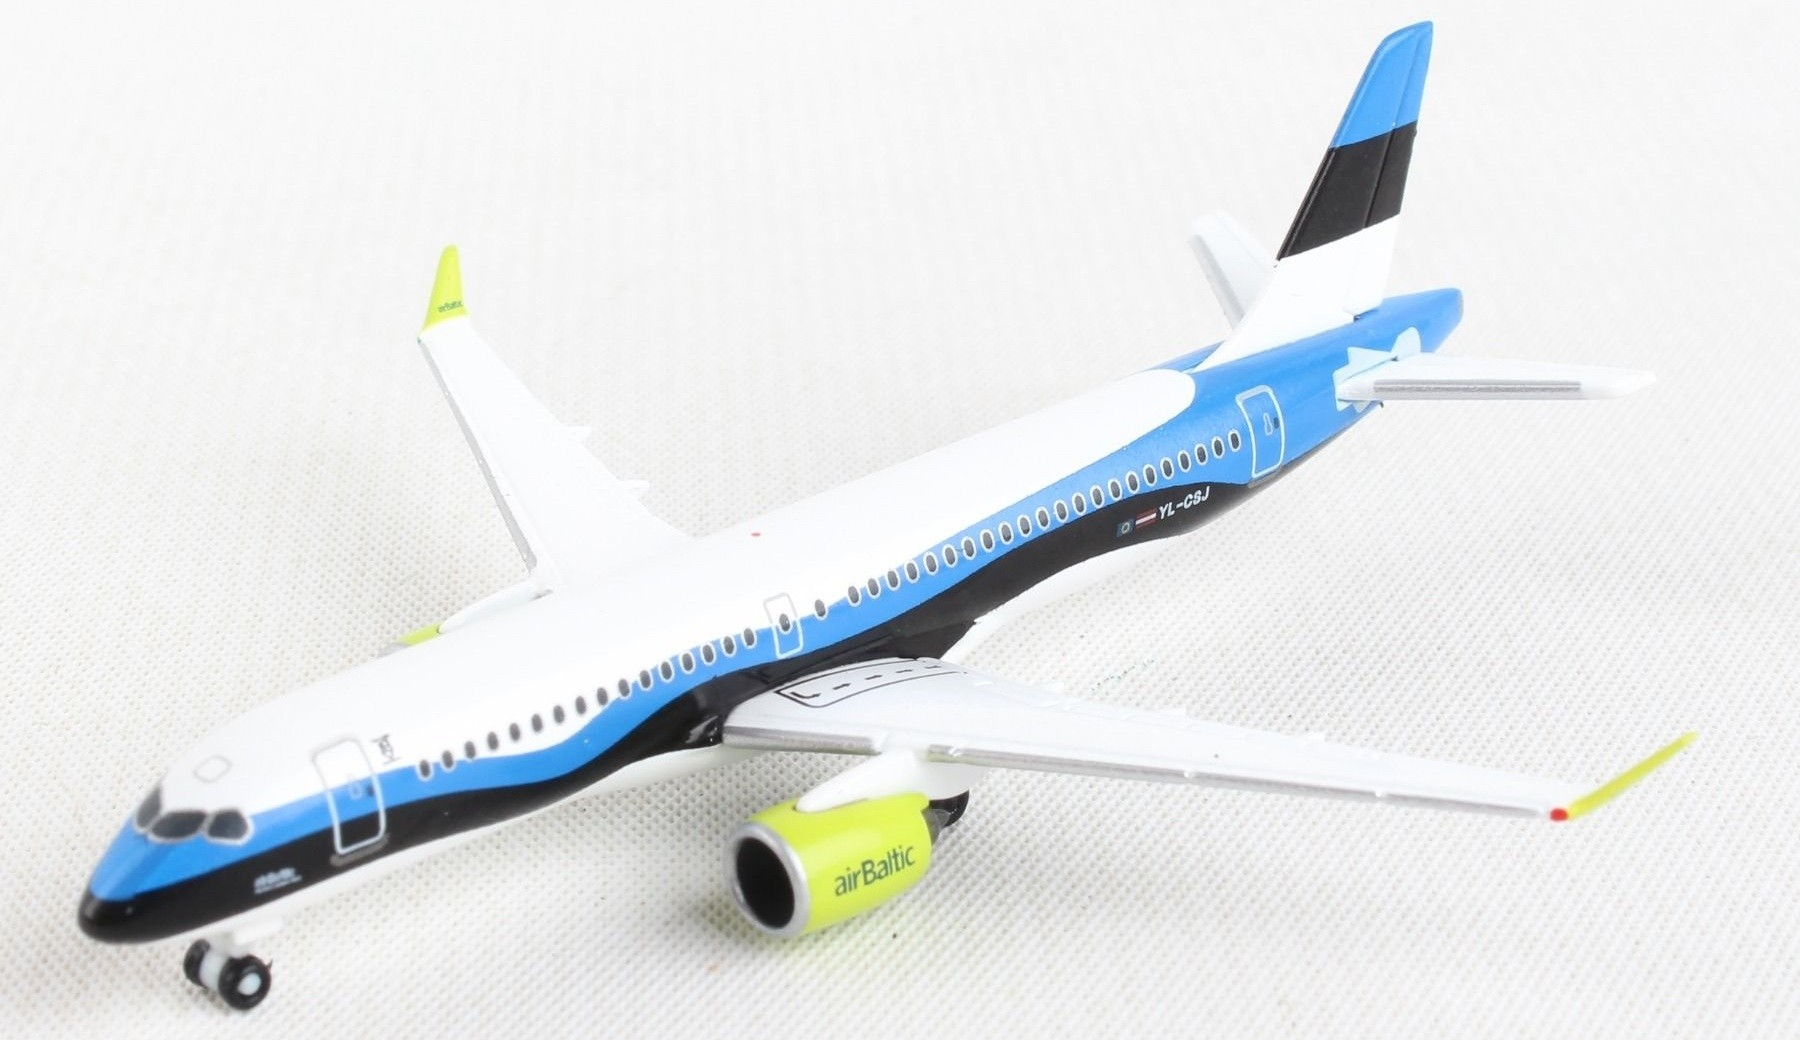 Herpa Wings 1:500  Airbus A220-300  Air Baltic YL-CSK  574123  Modellairport500